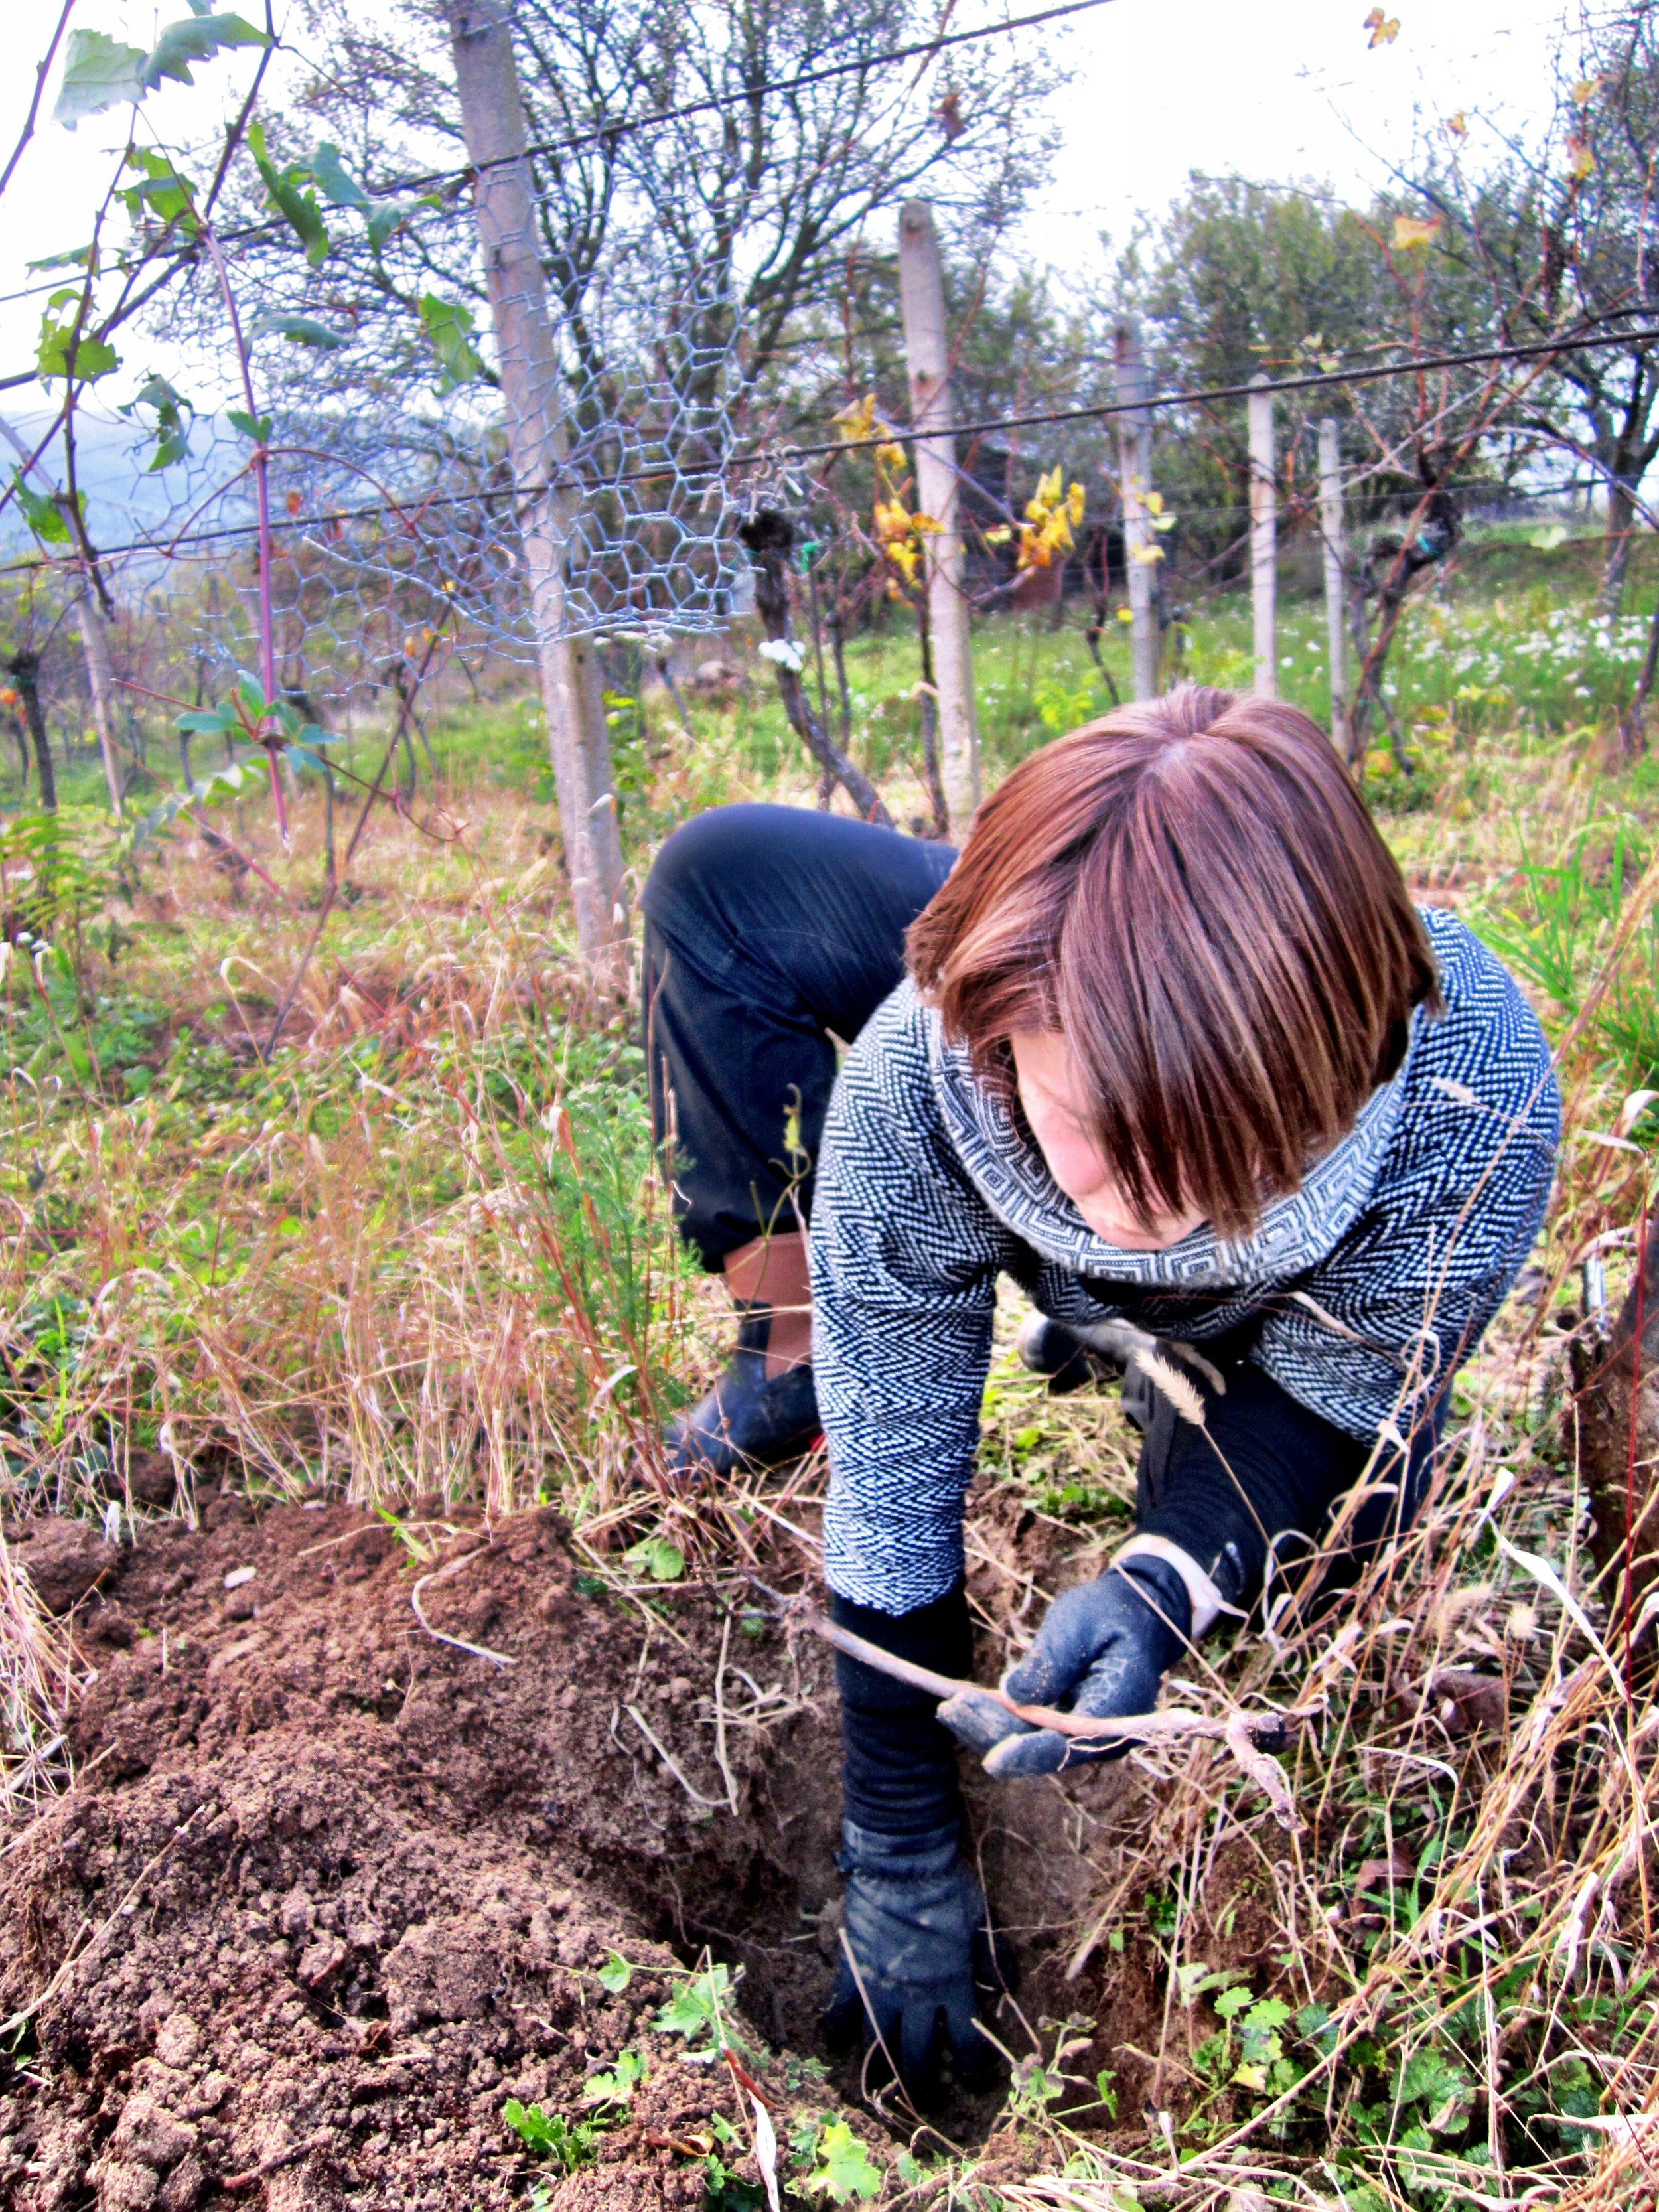 Transplanting vines - here's hoping we have the magic touch and they grow plump grapes for future harvest.